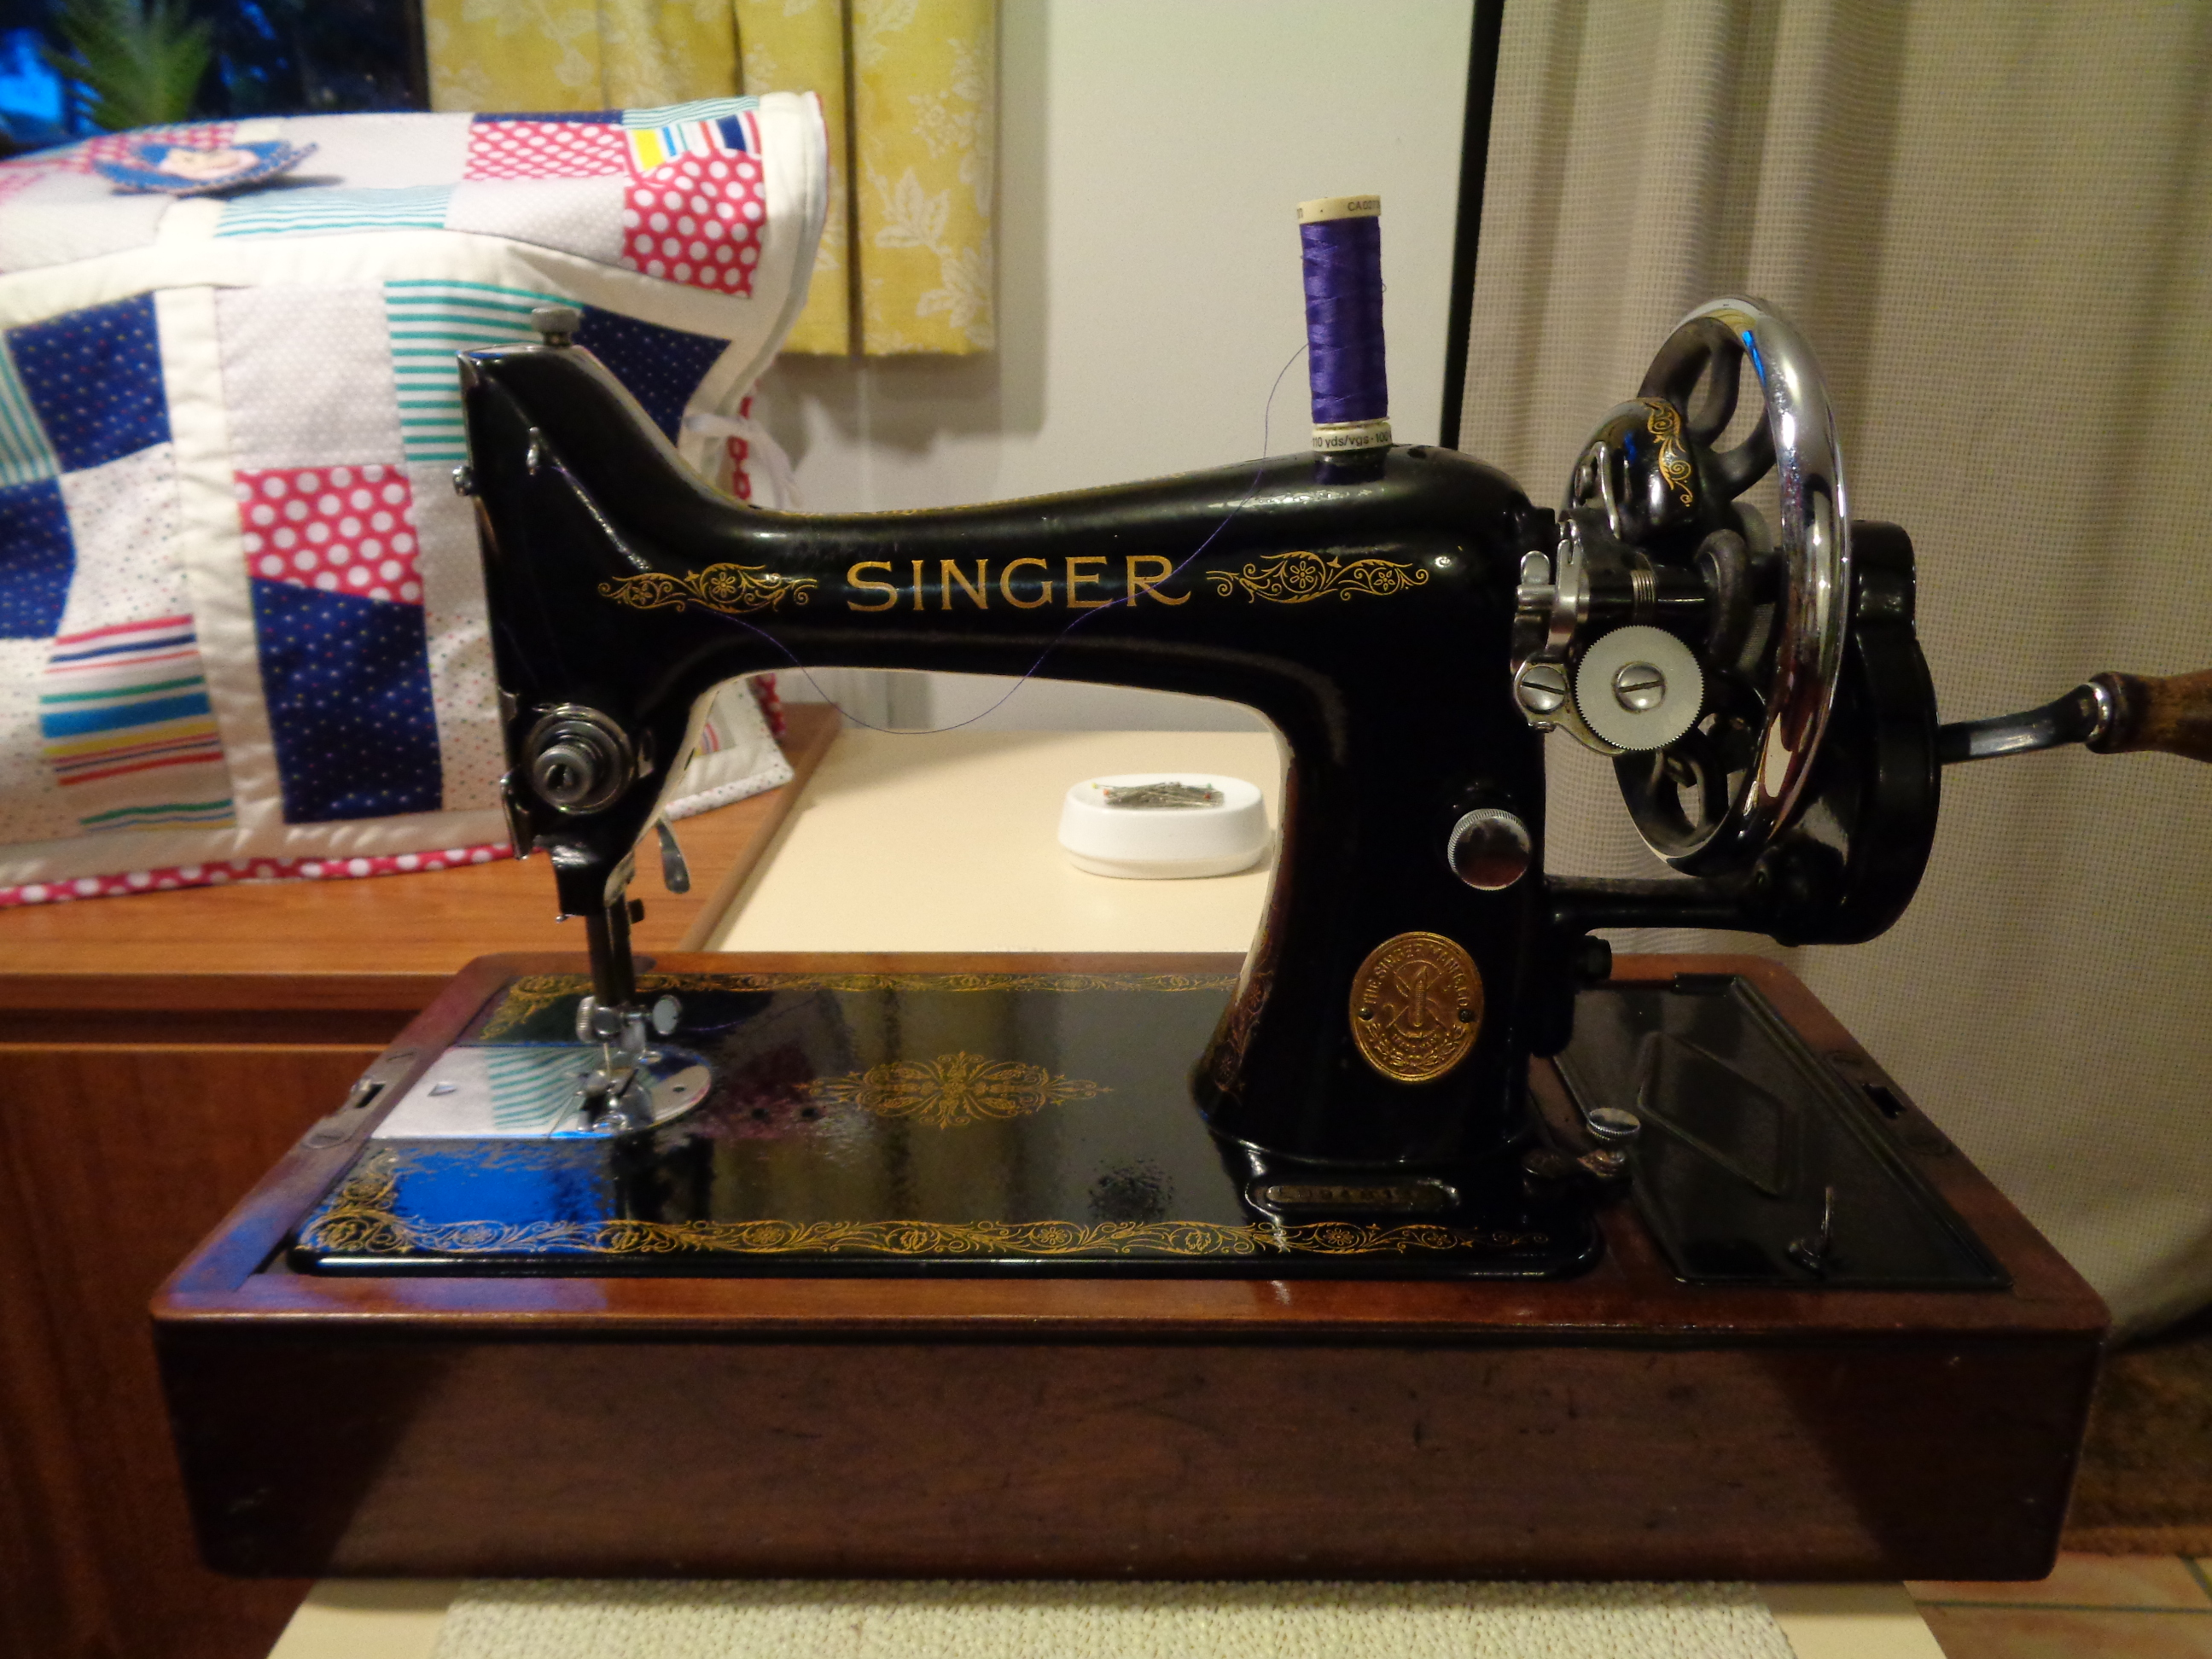 Singer Hand Machine